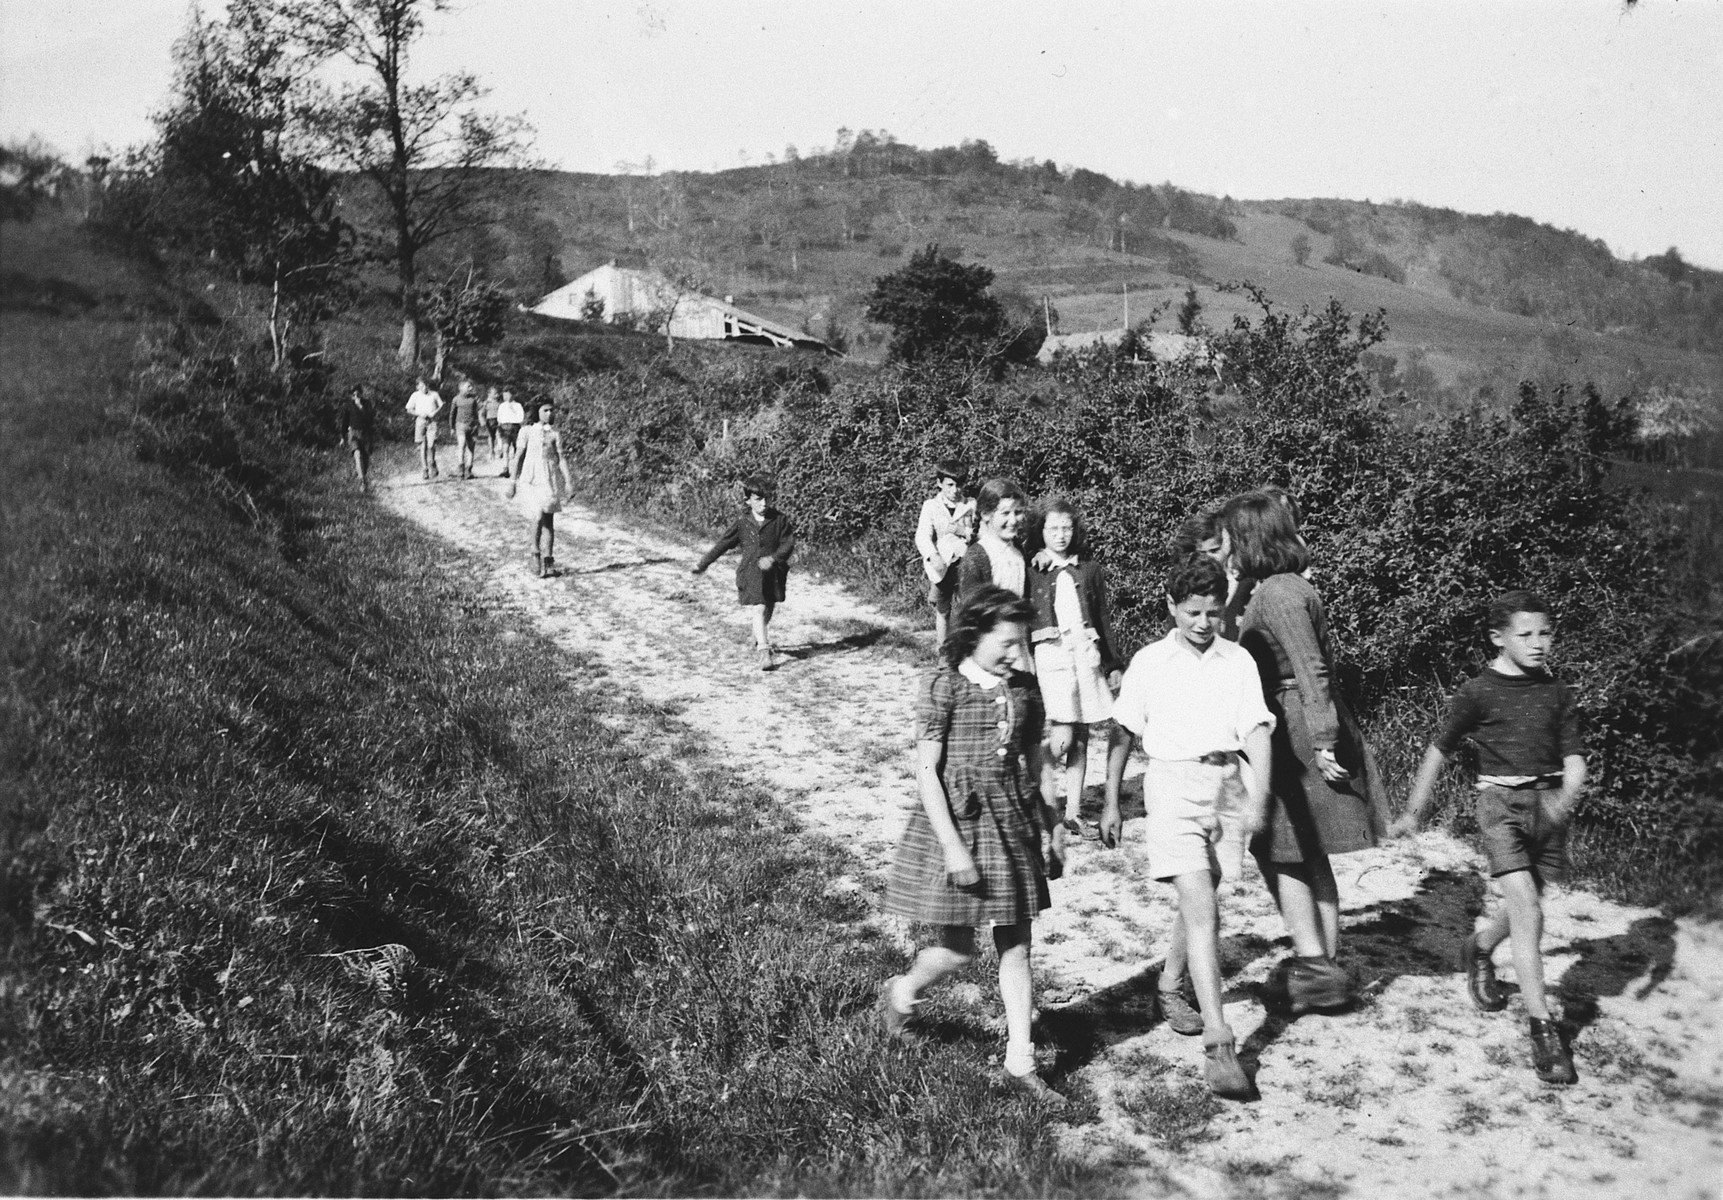 Children go for a walk in the countryside near Chateau de la Hille.  In foreground center, with white shirt and dark hair, Paul Schlesinger. The girl behind his right shoulder, in dark sweater and light dress (wearing glasses) is Gonda Weinberg (now Connie van Praag).